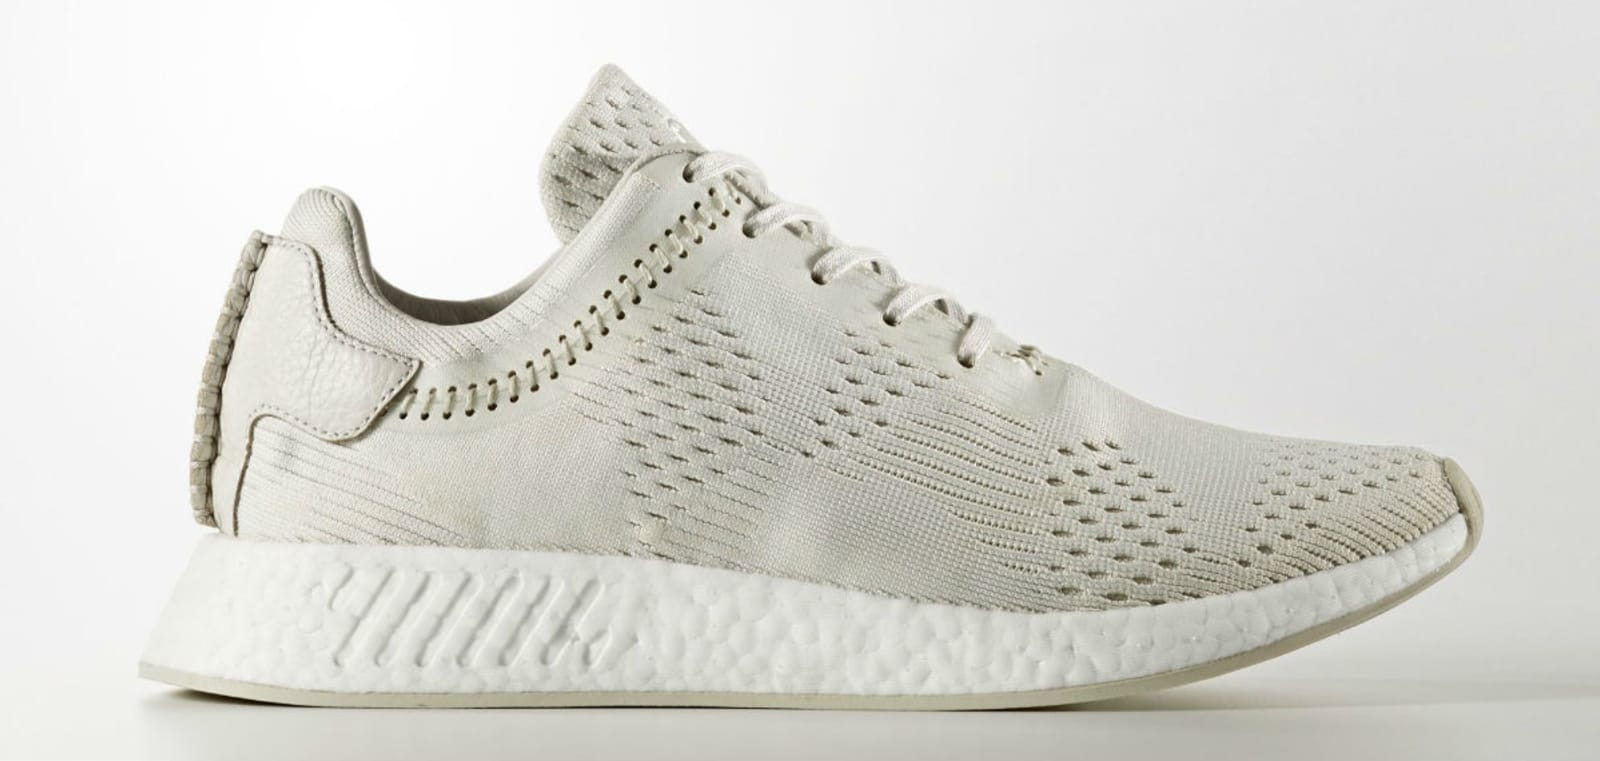 a01114e1228ed Adidas Ultra Boost White Silver - Release Date Roundup  The Sneakers ...